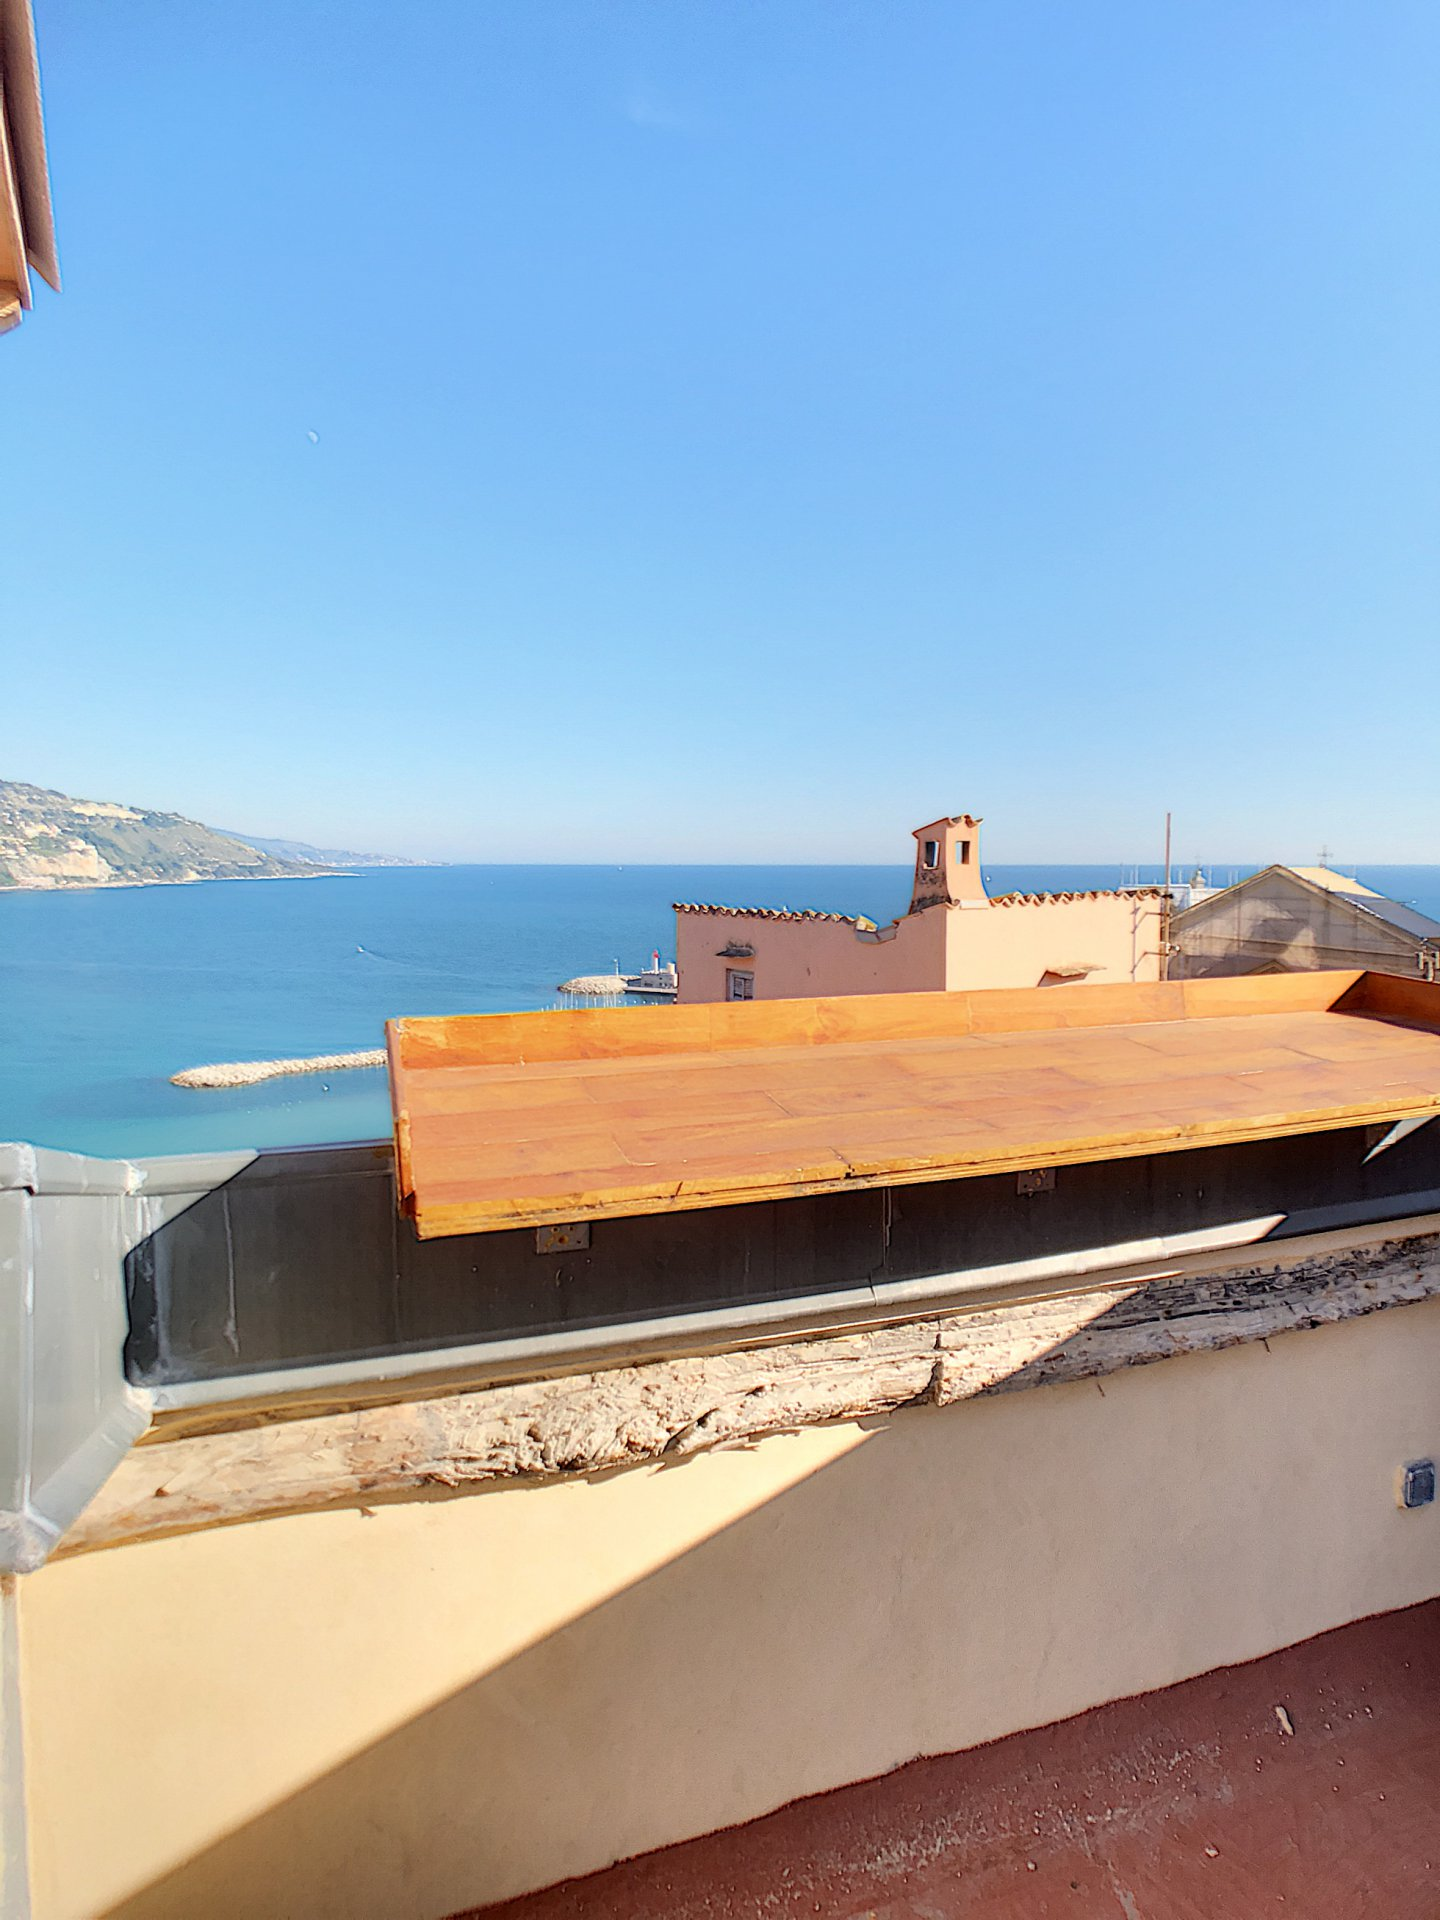 Triplex with panoramic view from the terrace - Menton Old Town